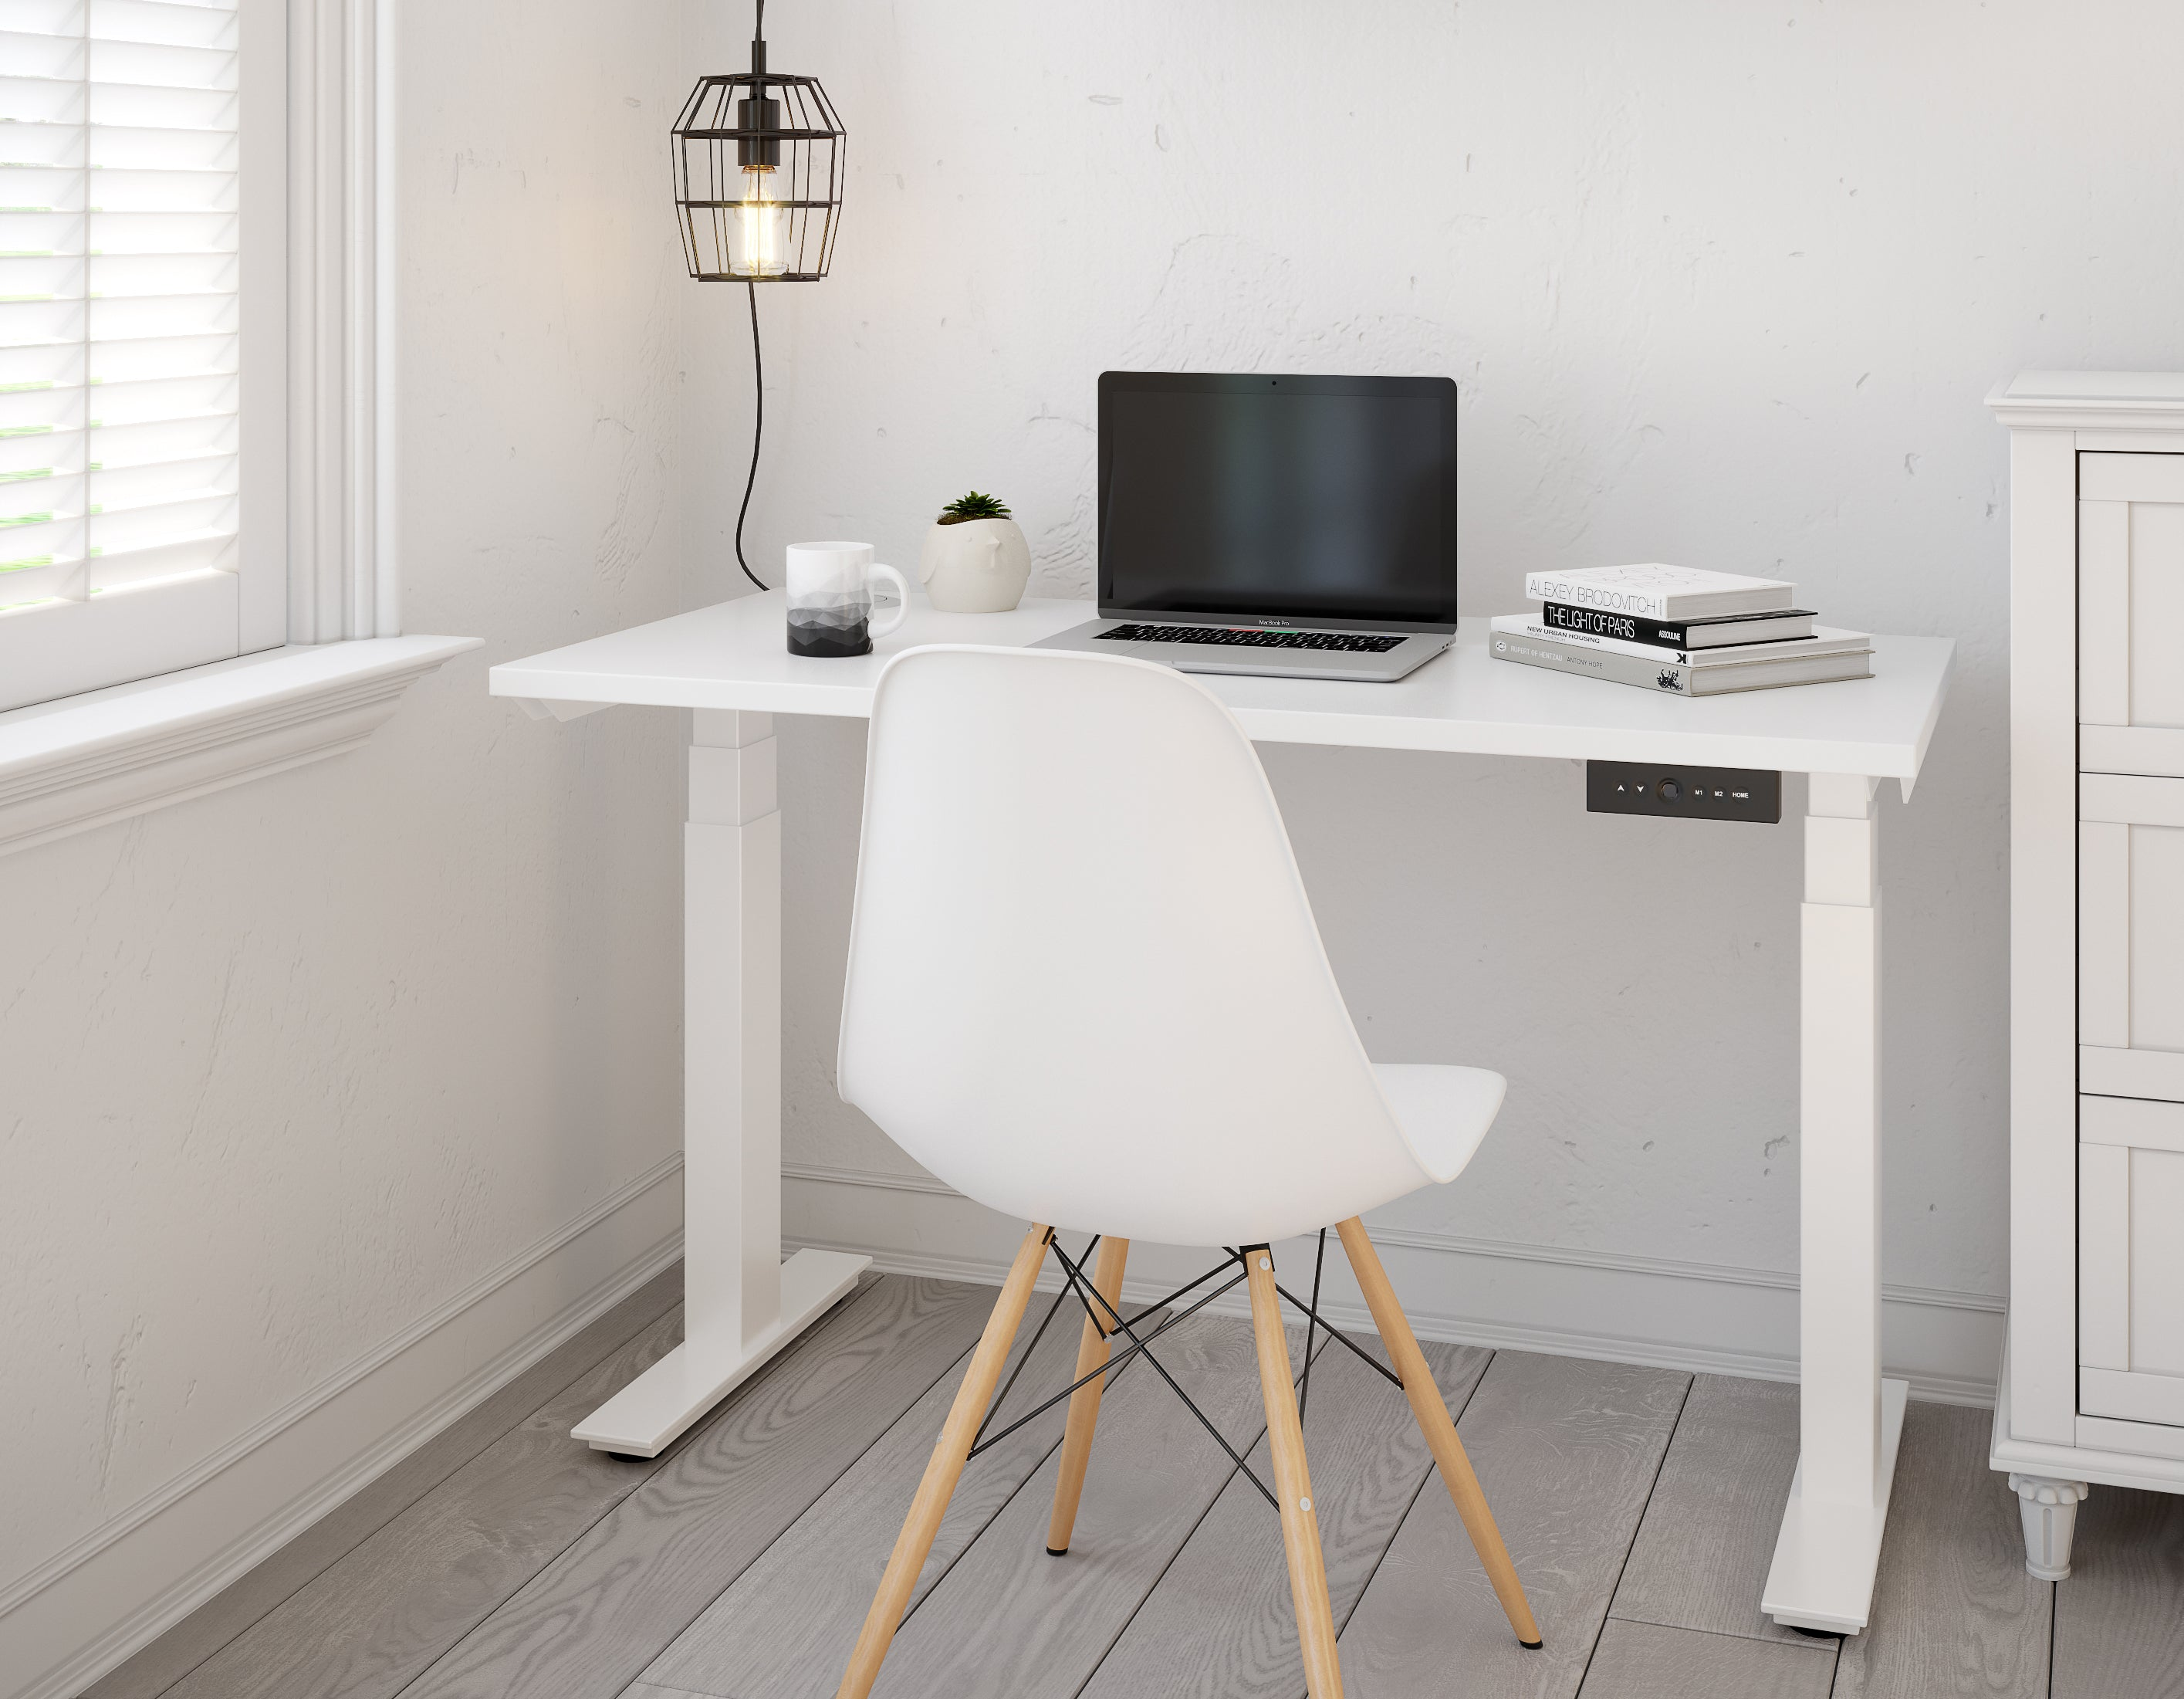 Height Adjustable Desk: The Benefits of a Standing Desk